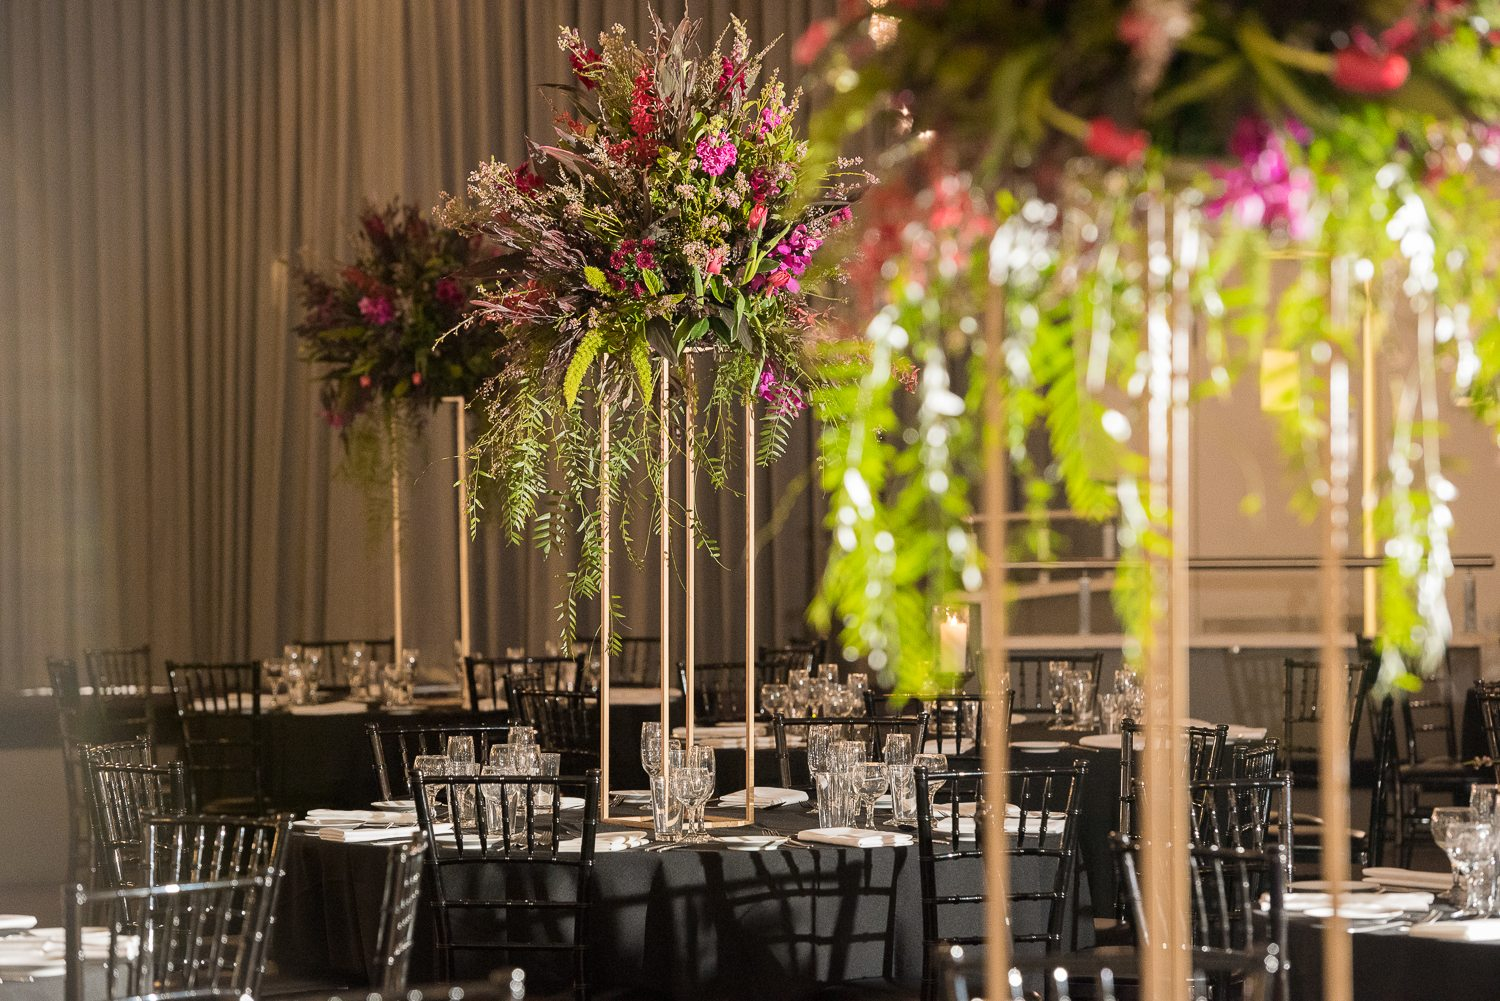 pink and green floral arrangement over black table